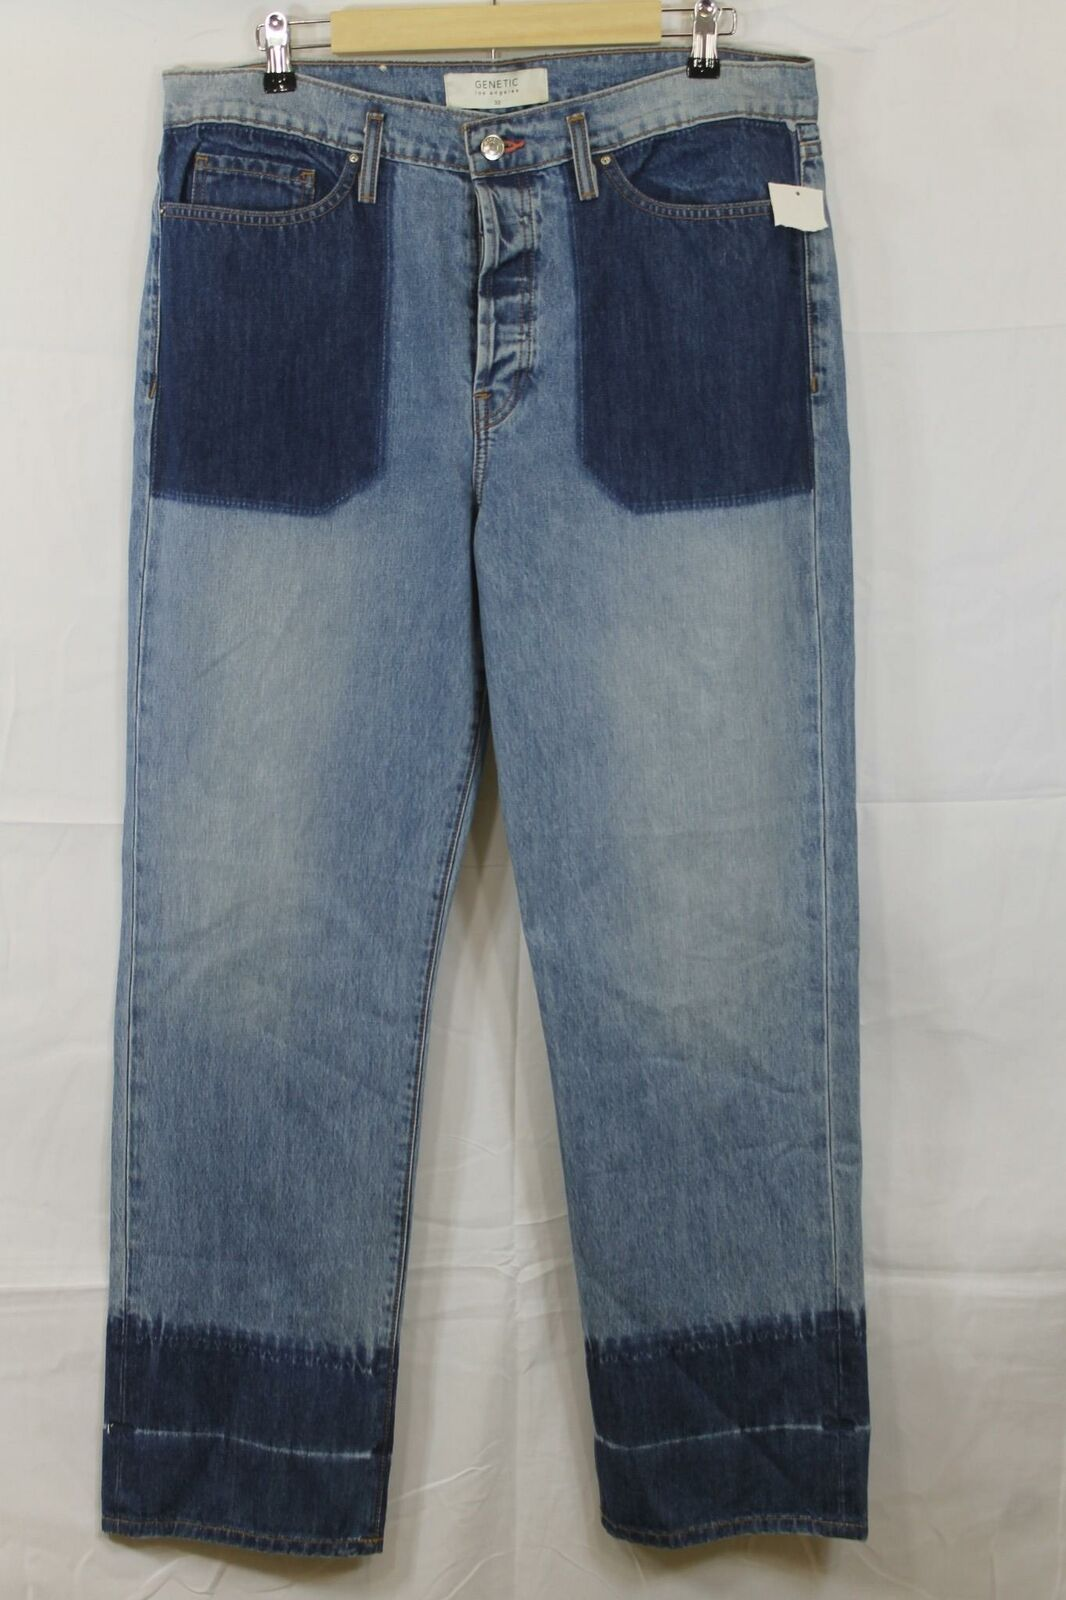 Womens Genetic Los Angeles joey bootcut Jeans Size 32 x 31 NWT